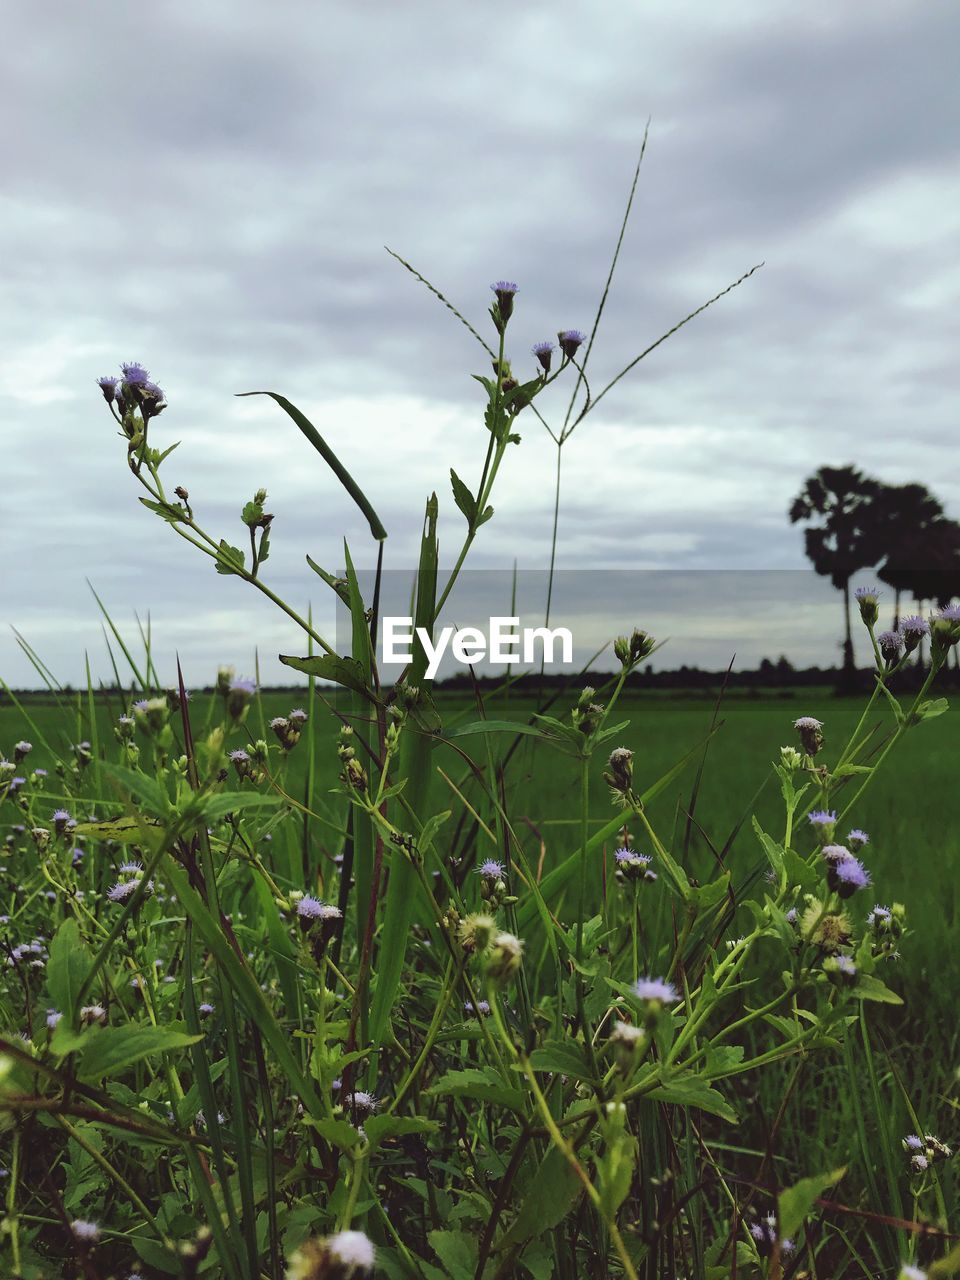 plant, growth, sky, beauty in nature, cloud - sky, nature, field, land, flower, green color, flowering plant, grass, freshness, no people, tranquility, day, environment, tranquil scene, landscape, close-up, outdoors, blade of grass